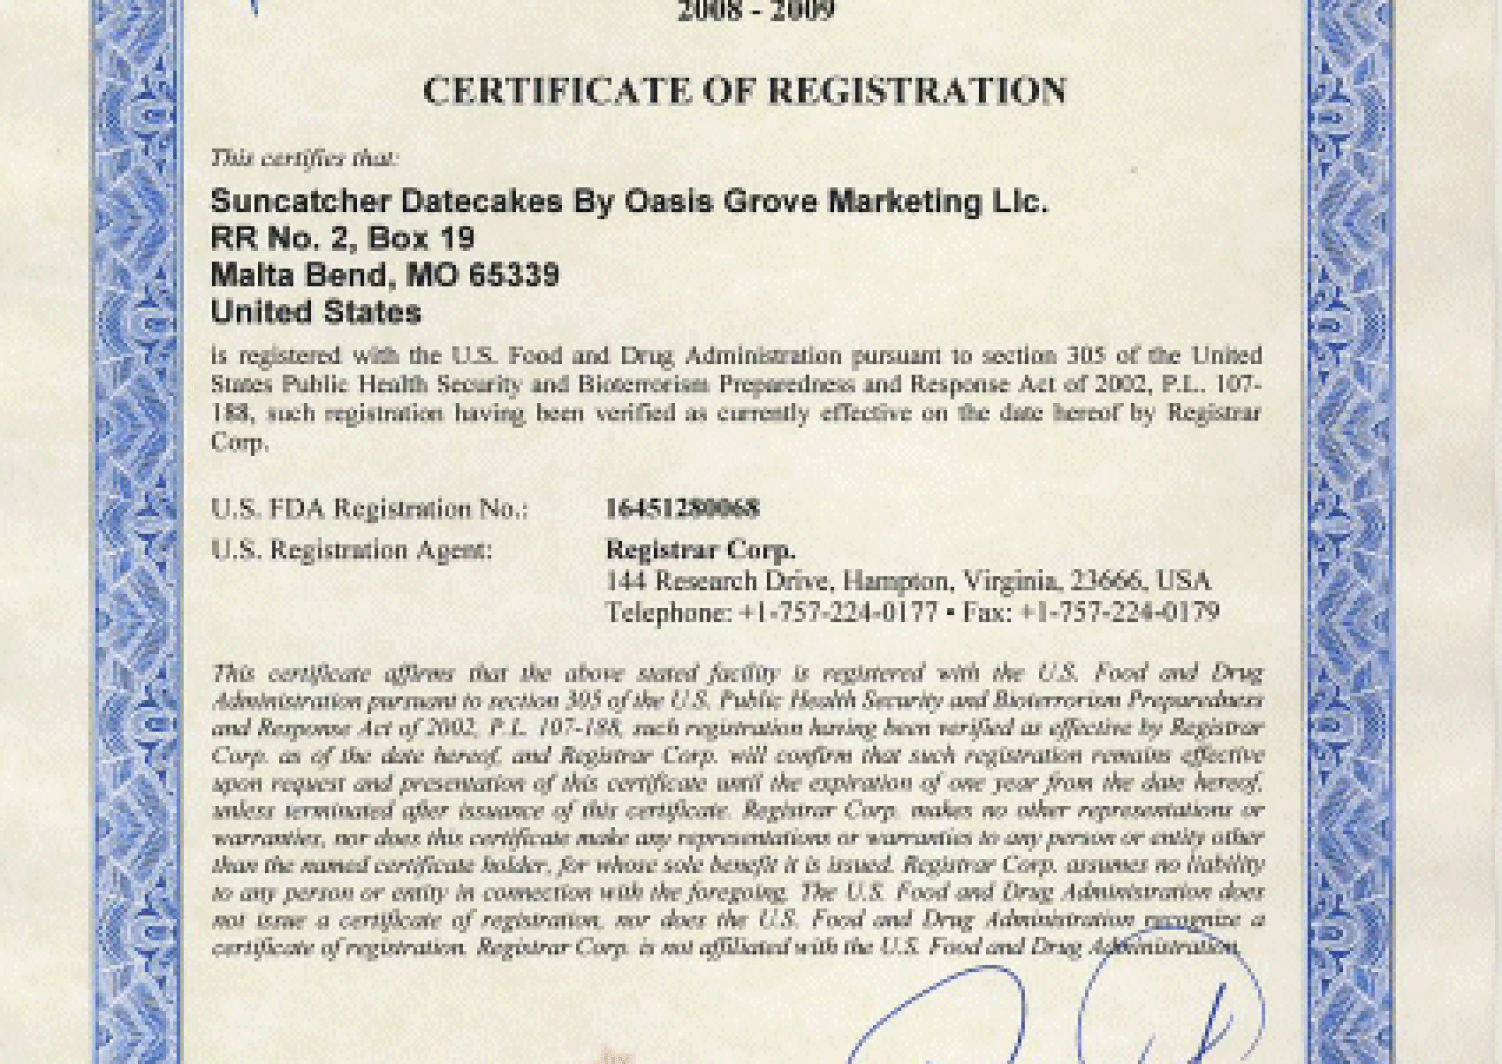 Fda Registered Certification Definition What Is Fda Registered Find Fda Registered Companies On Thomasnet Com Supplier Diversity Quality Discovery